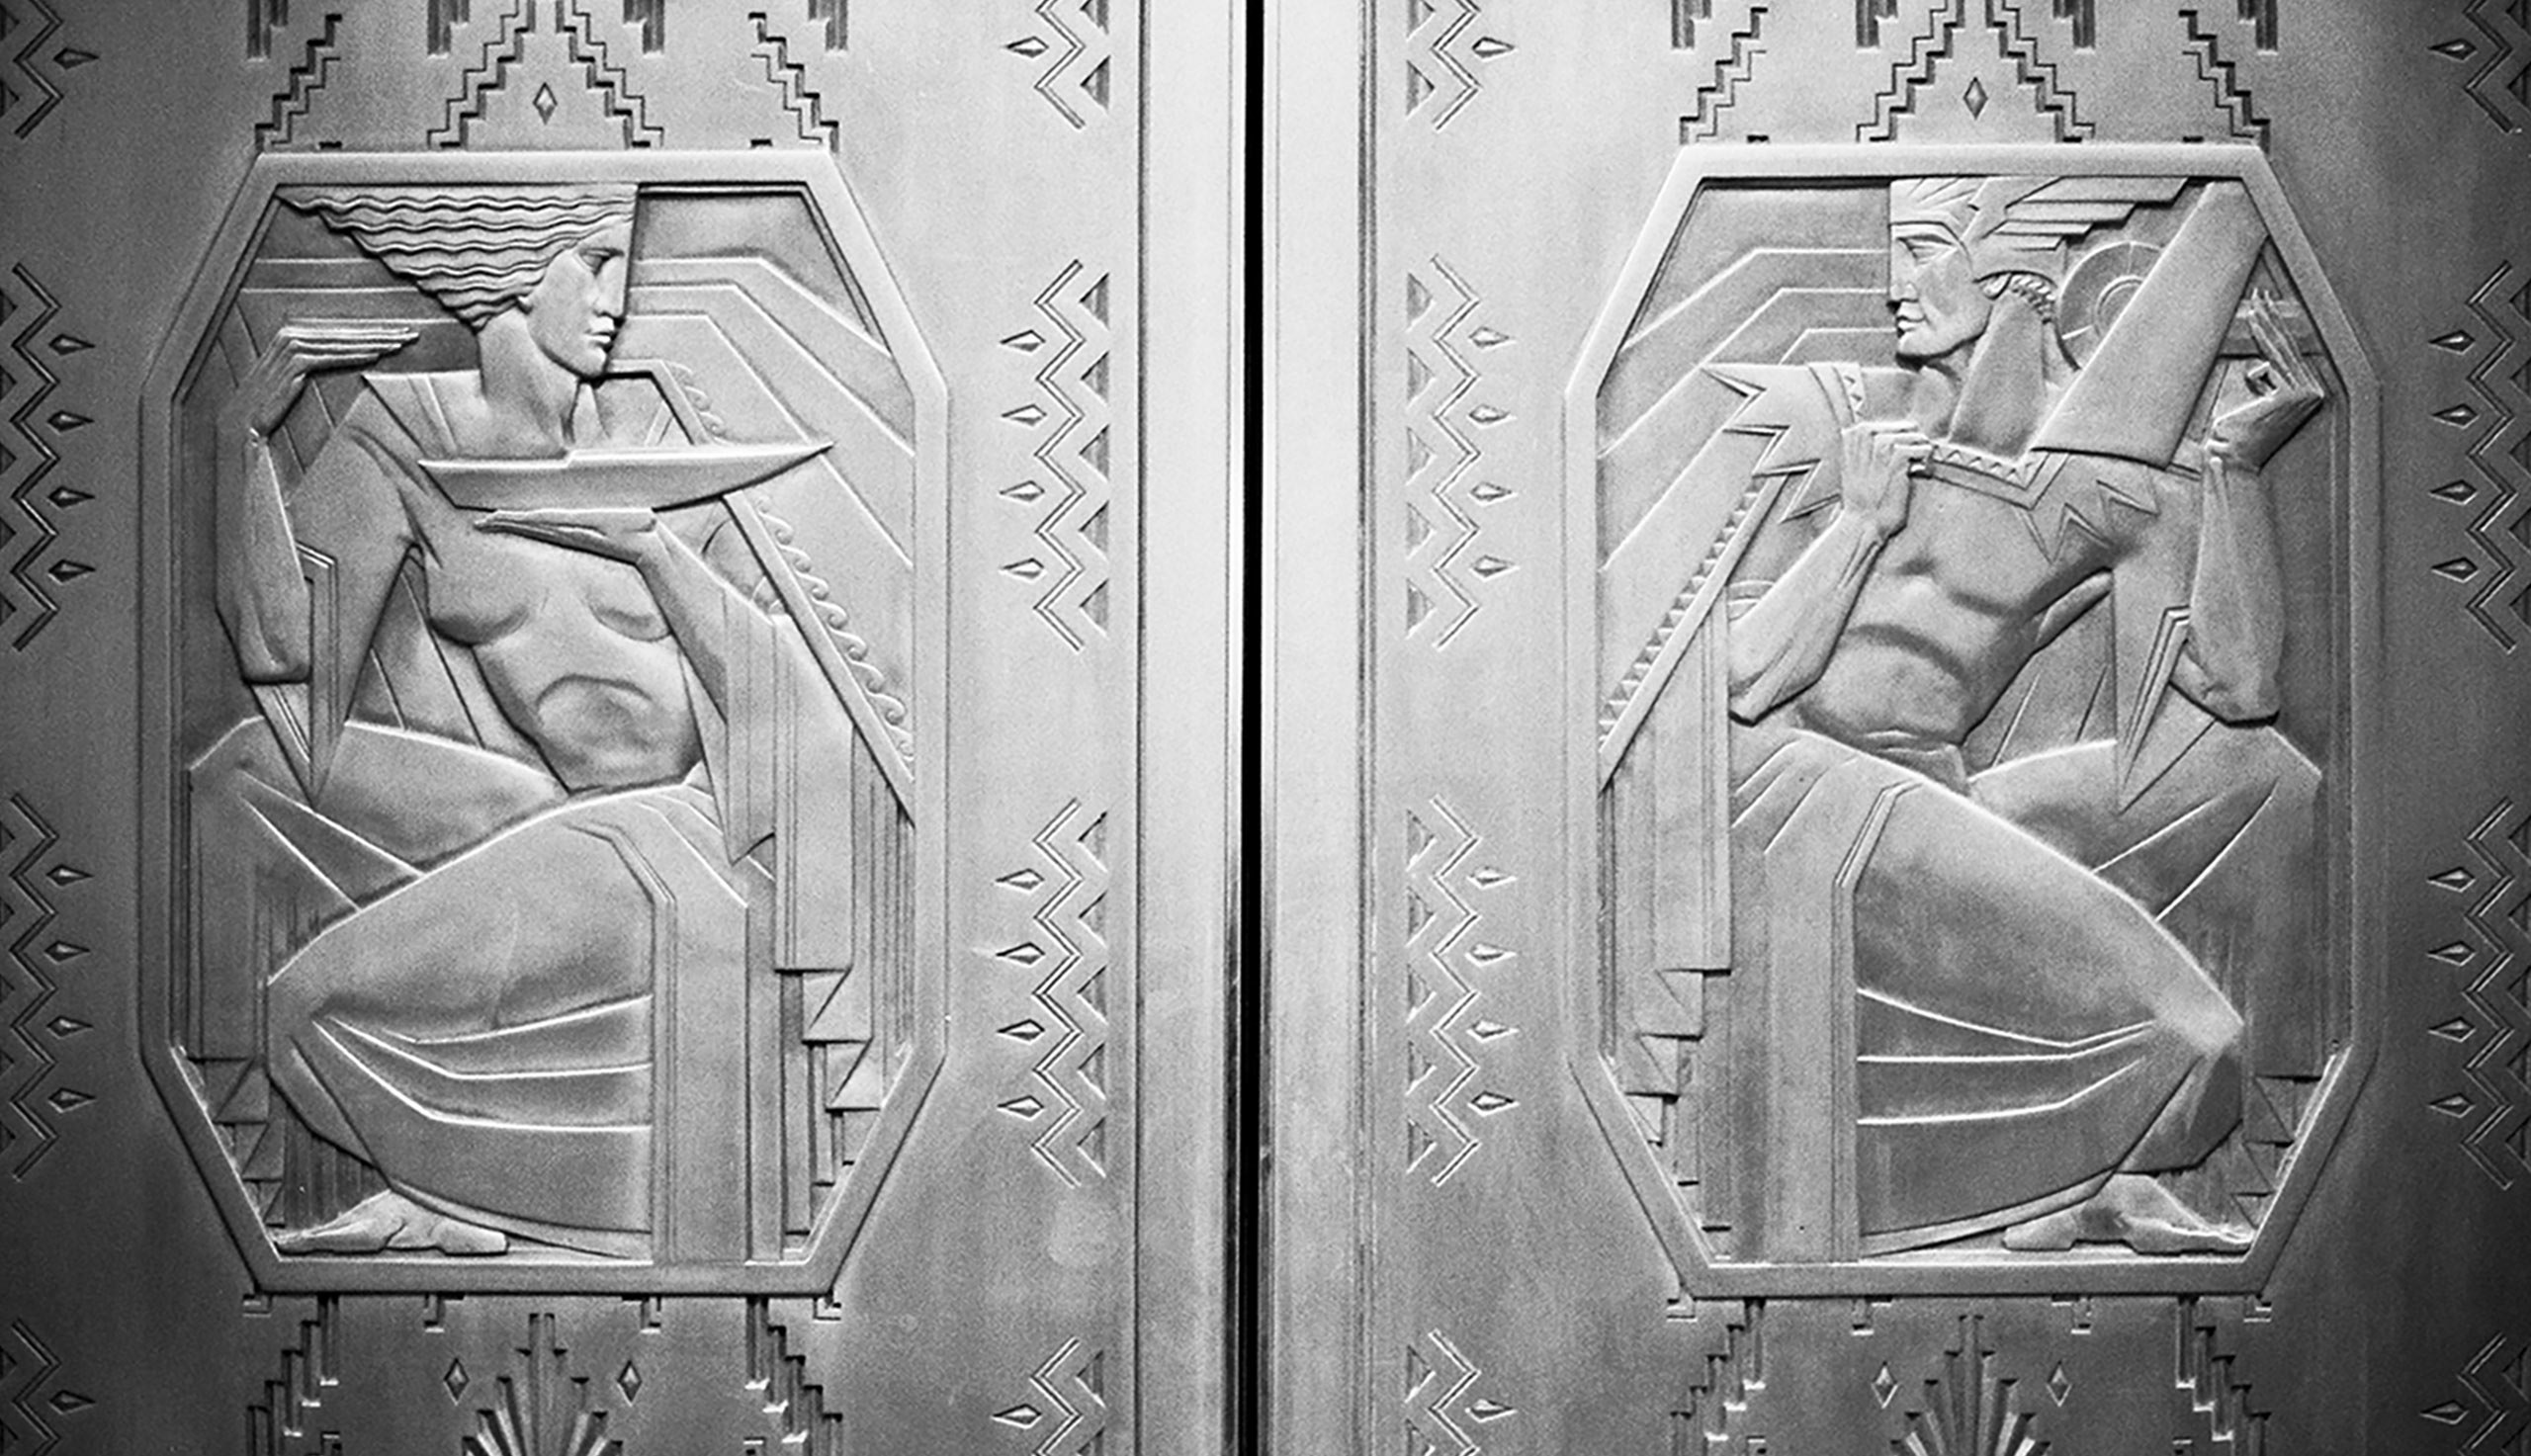 The elevator doors at 100 Barclay